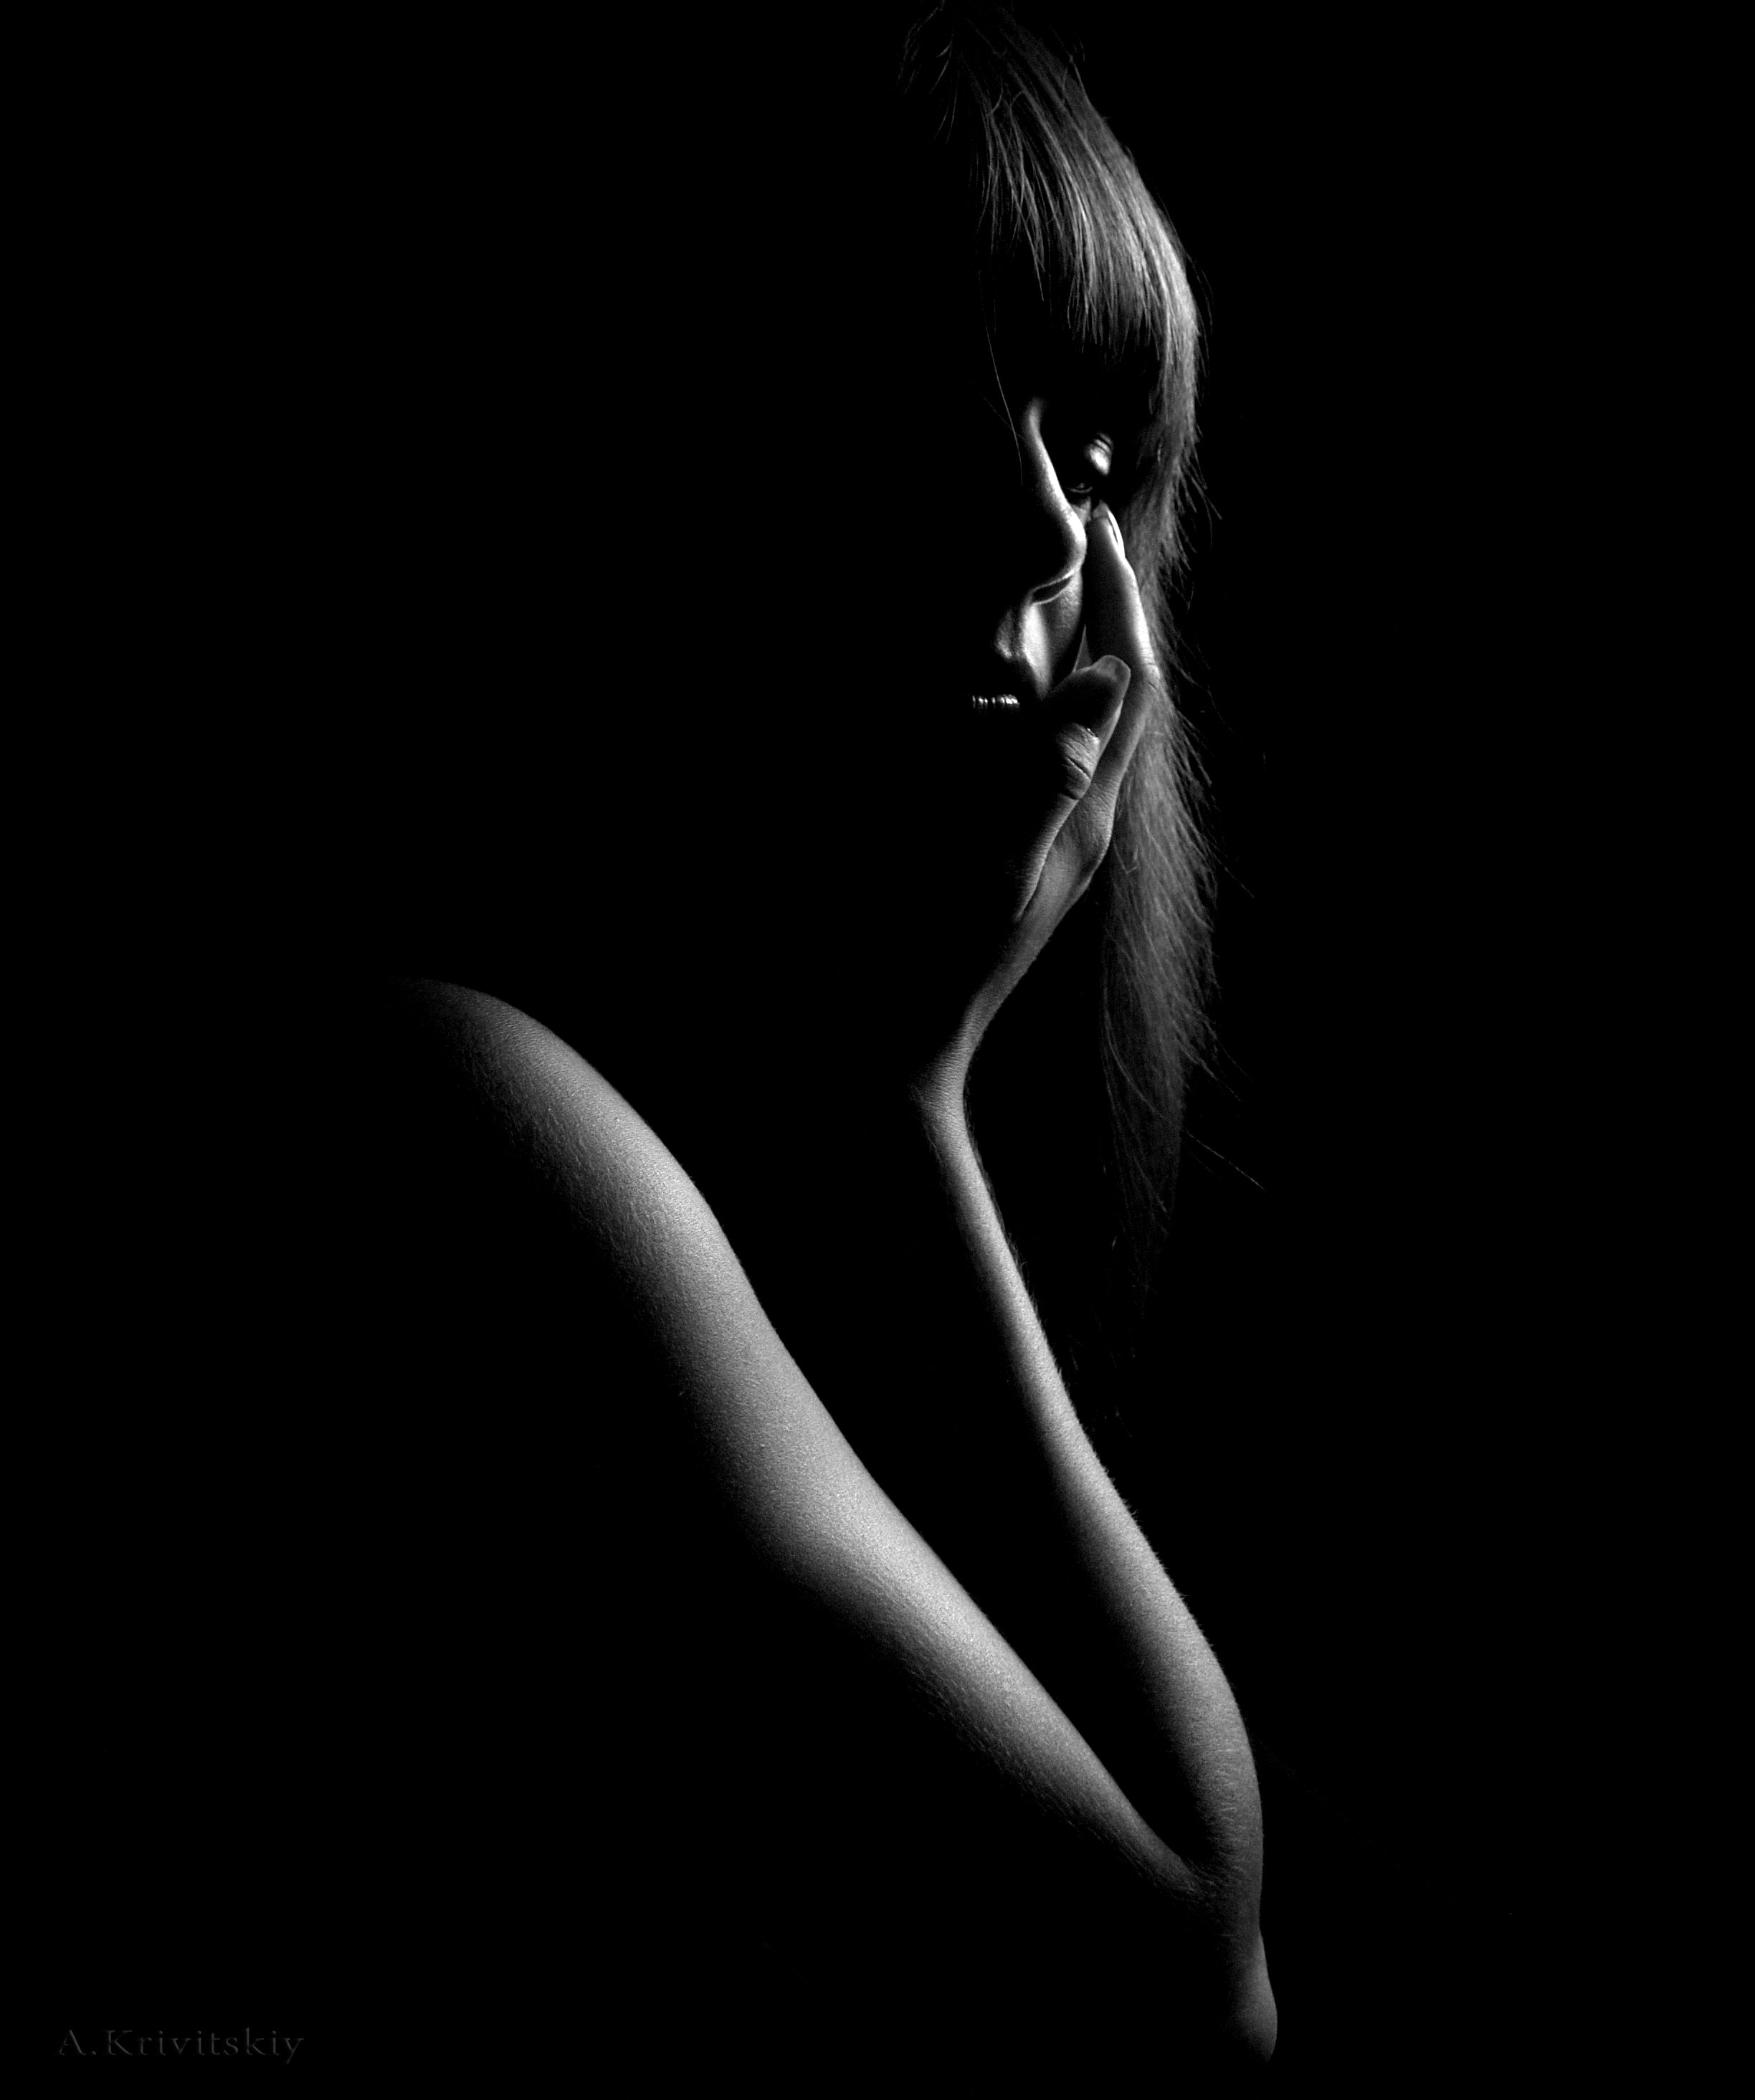 Grayscale Photo of Woman, Black and white, Black background, Dark, Face, HQ Photo